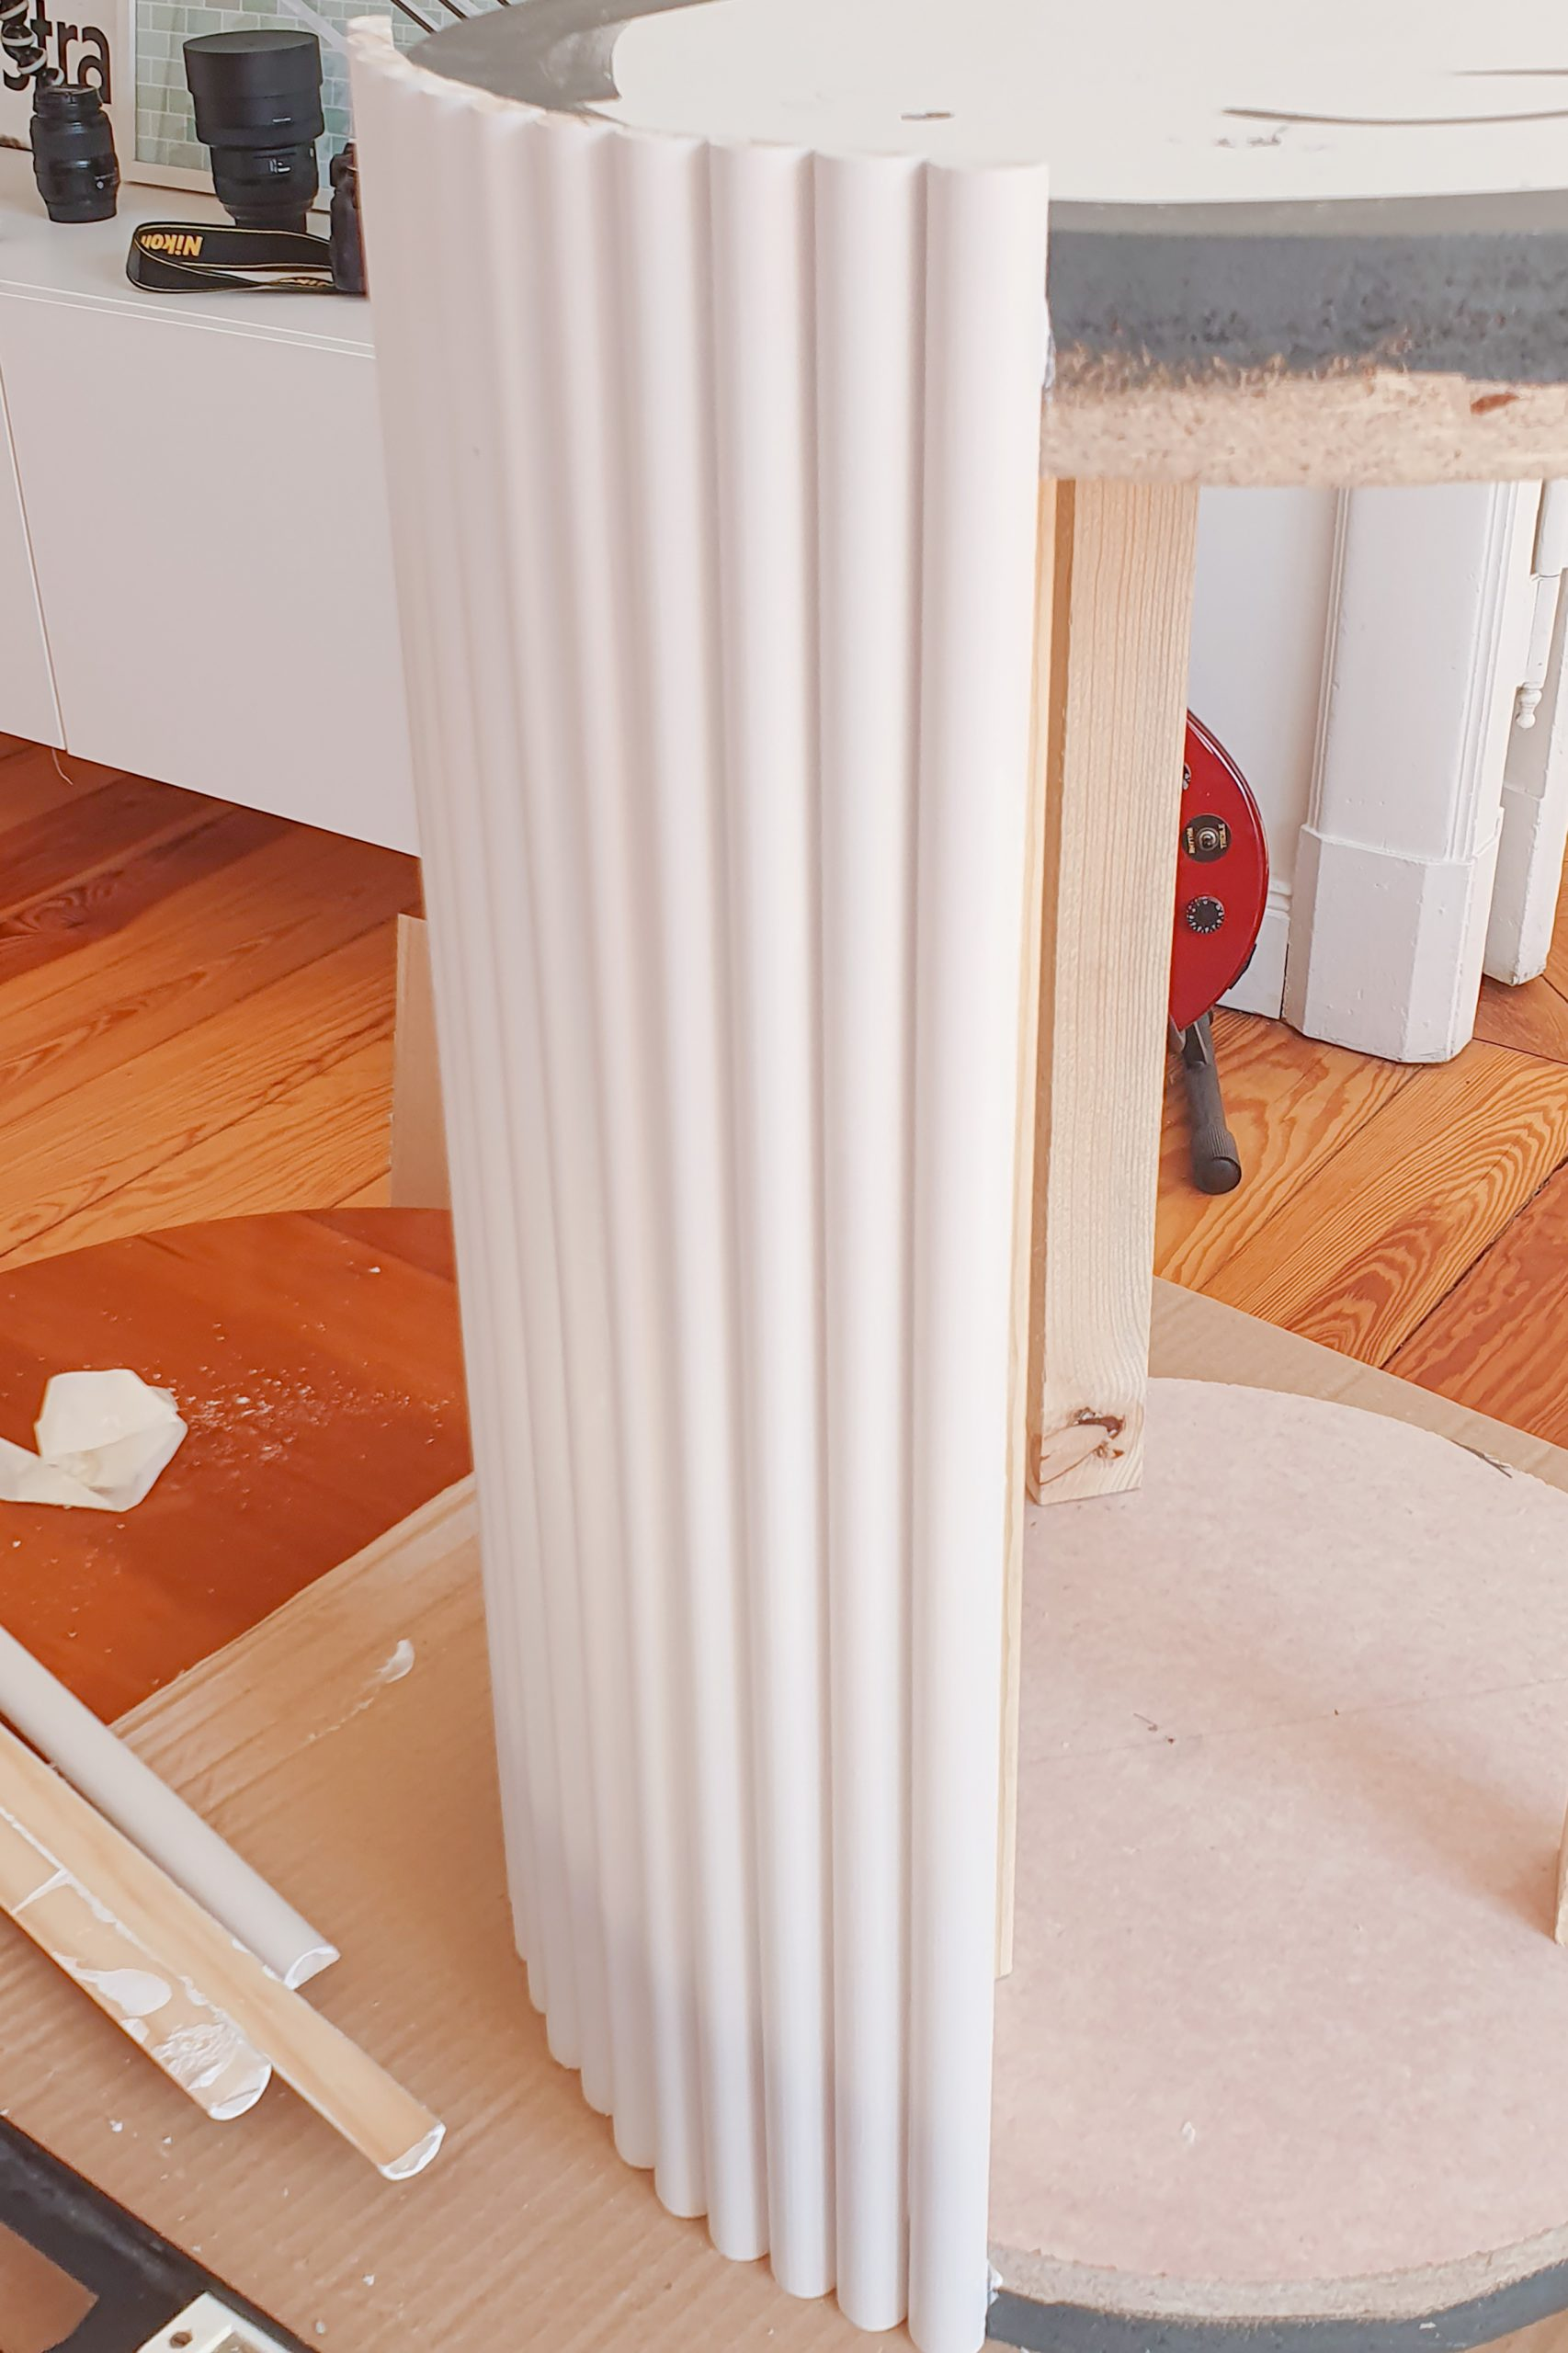 DIY Ribbed Side Table - Attaching Sides